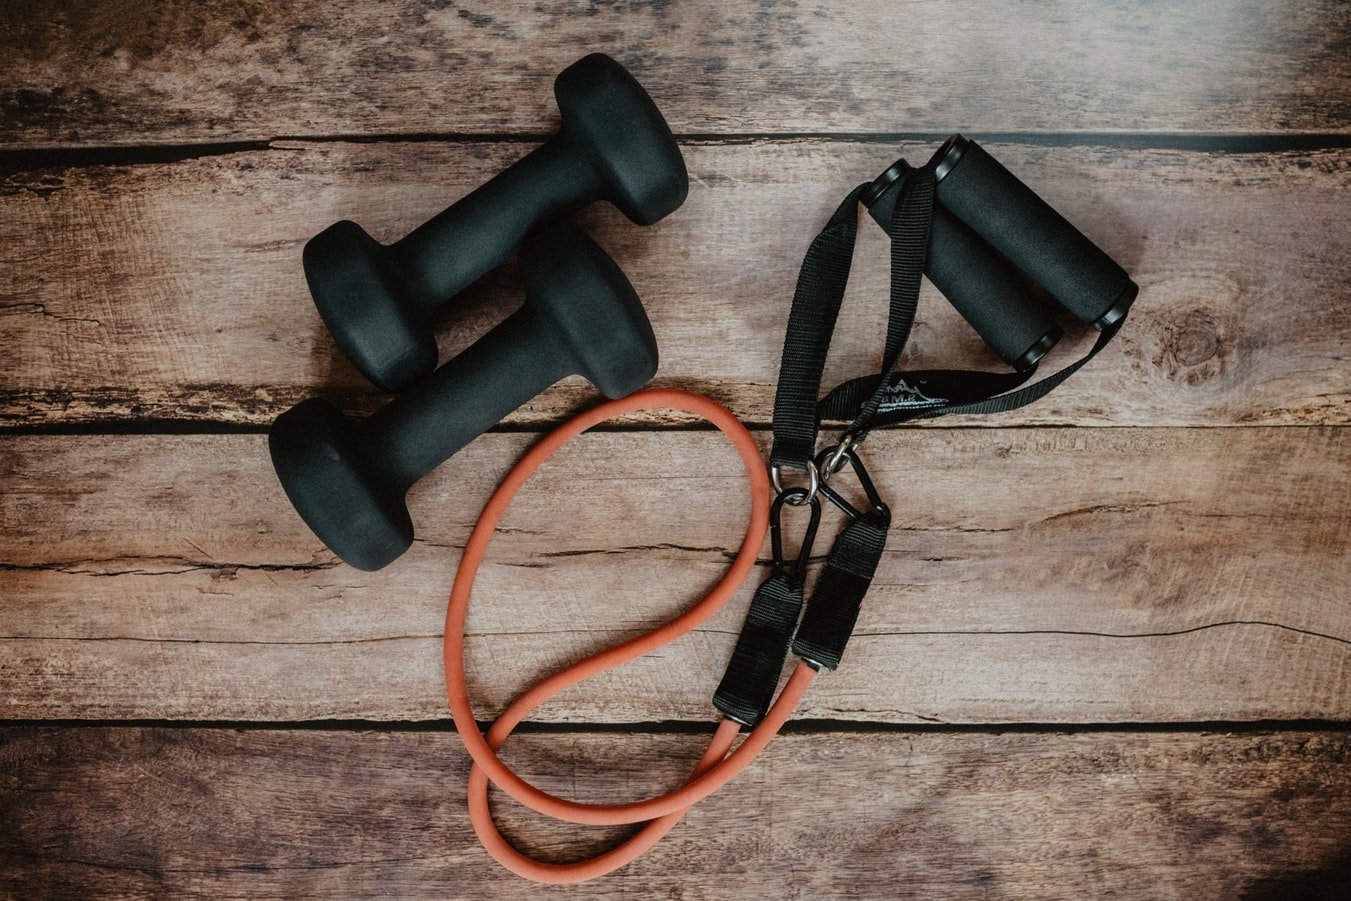 Resistance Band Exercises to Build Muscle at Home